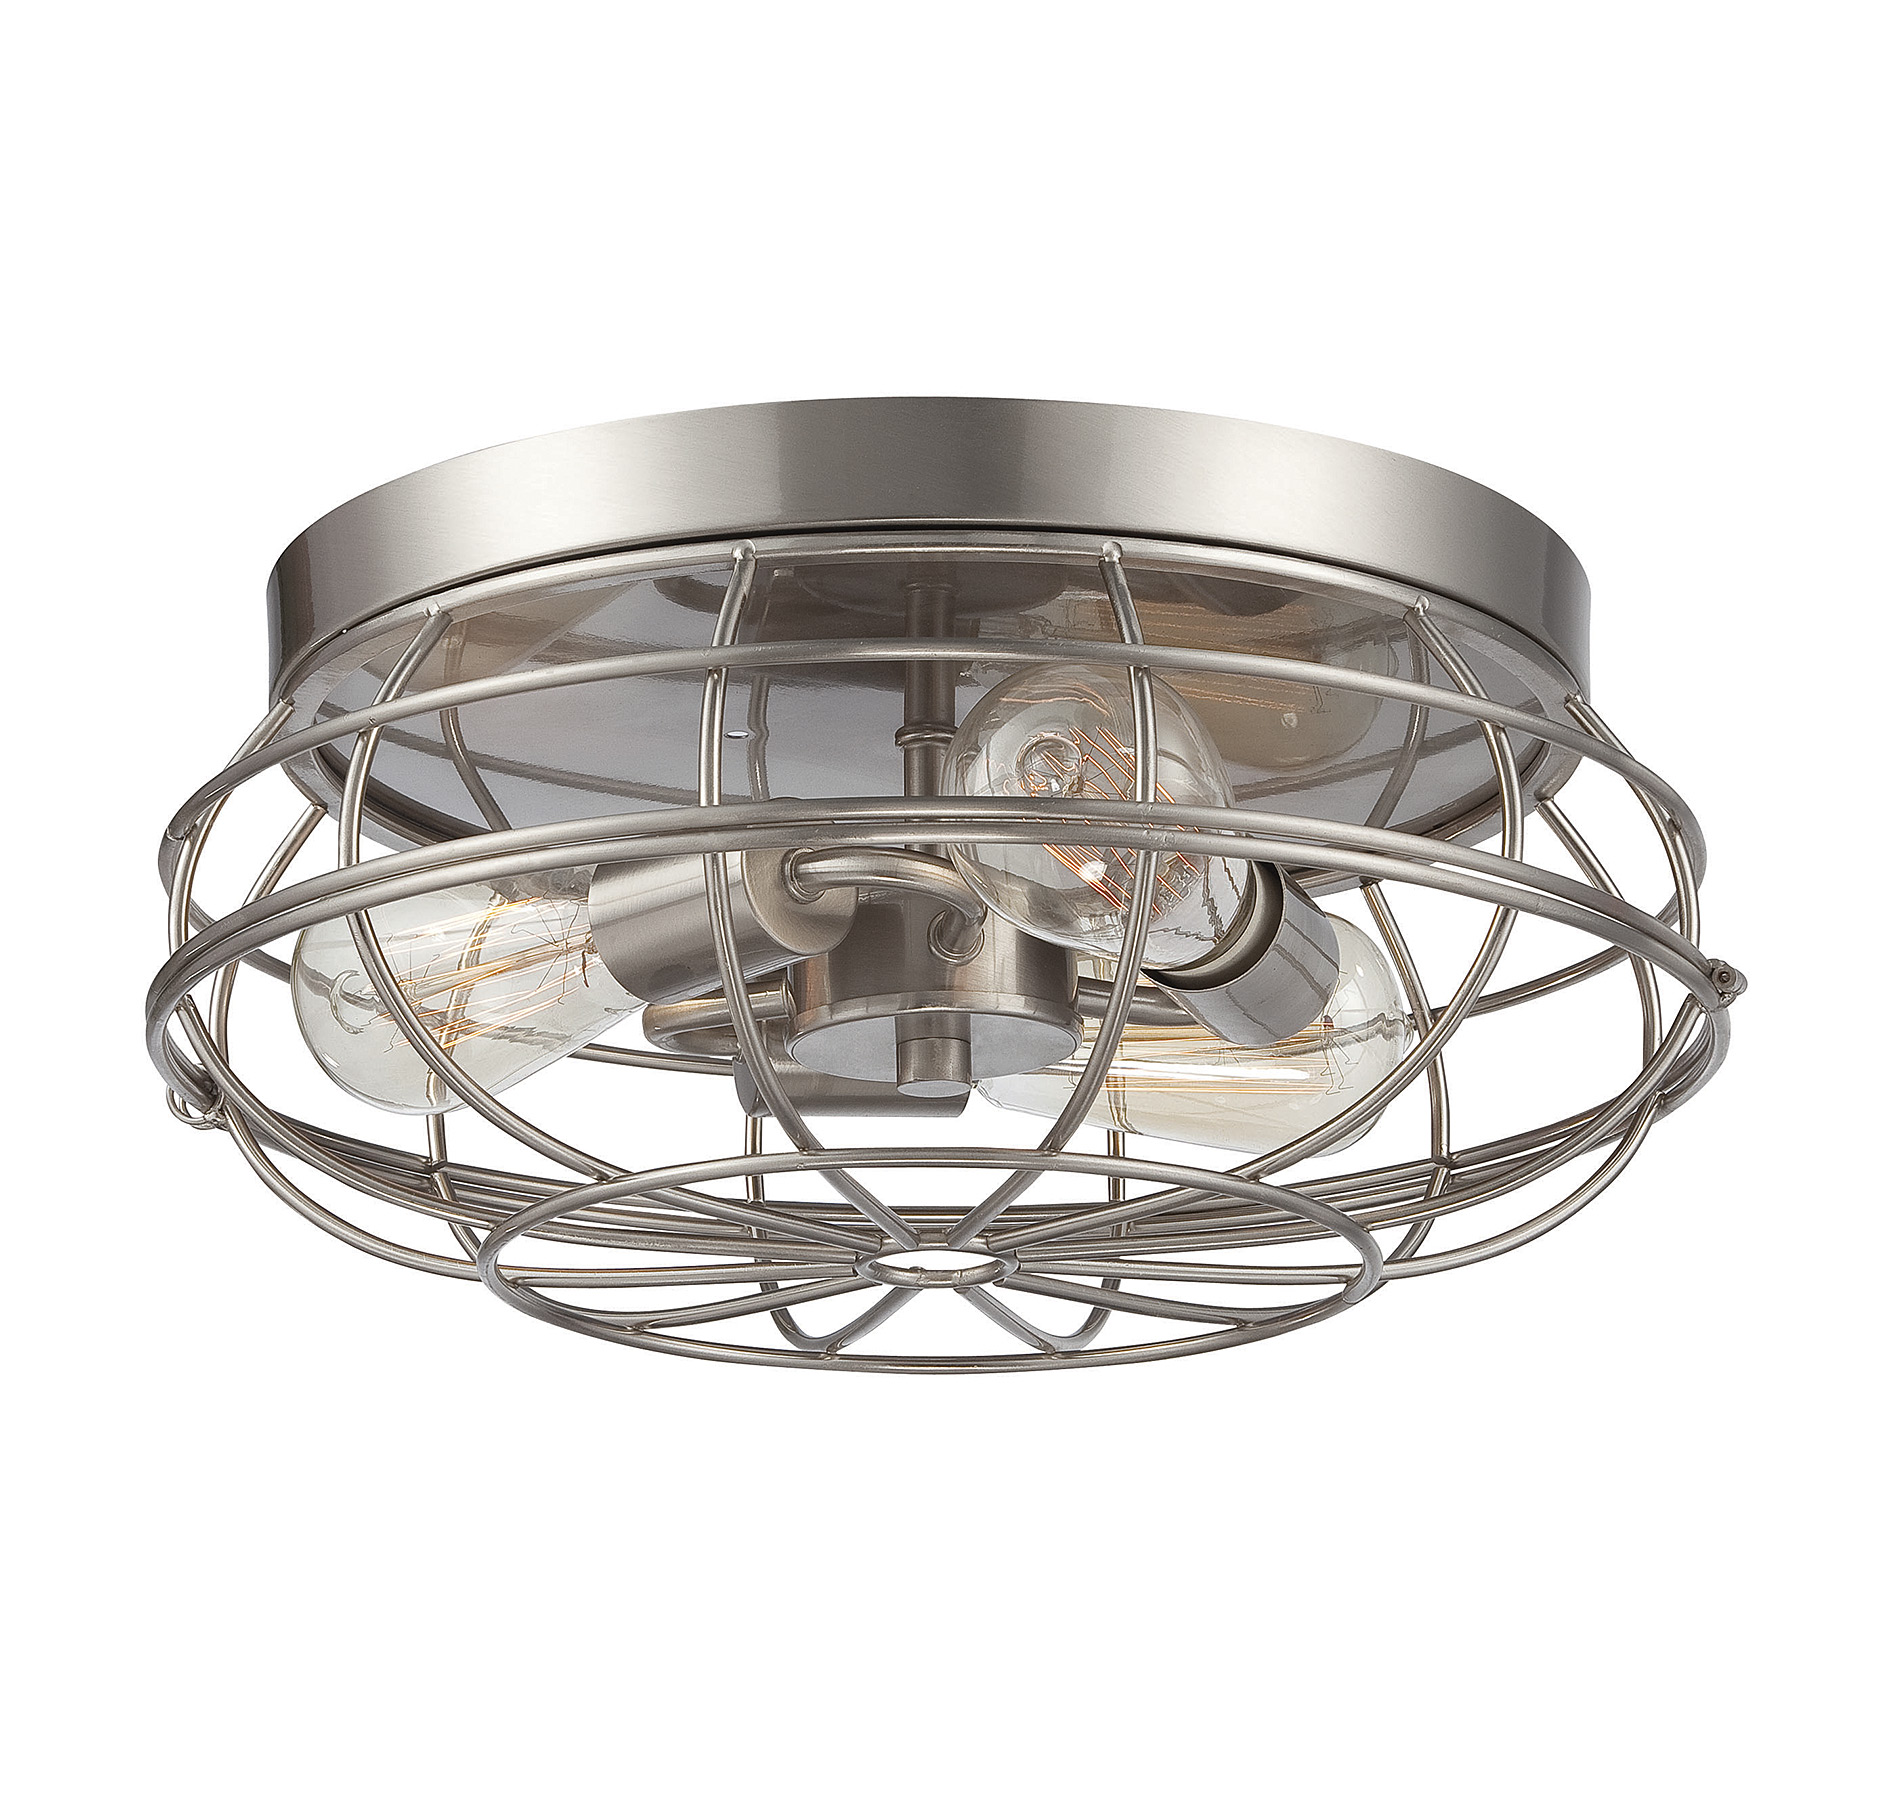 nickel mount light brushed industrial shades flush of ceiling ceilings products mesh lights